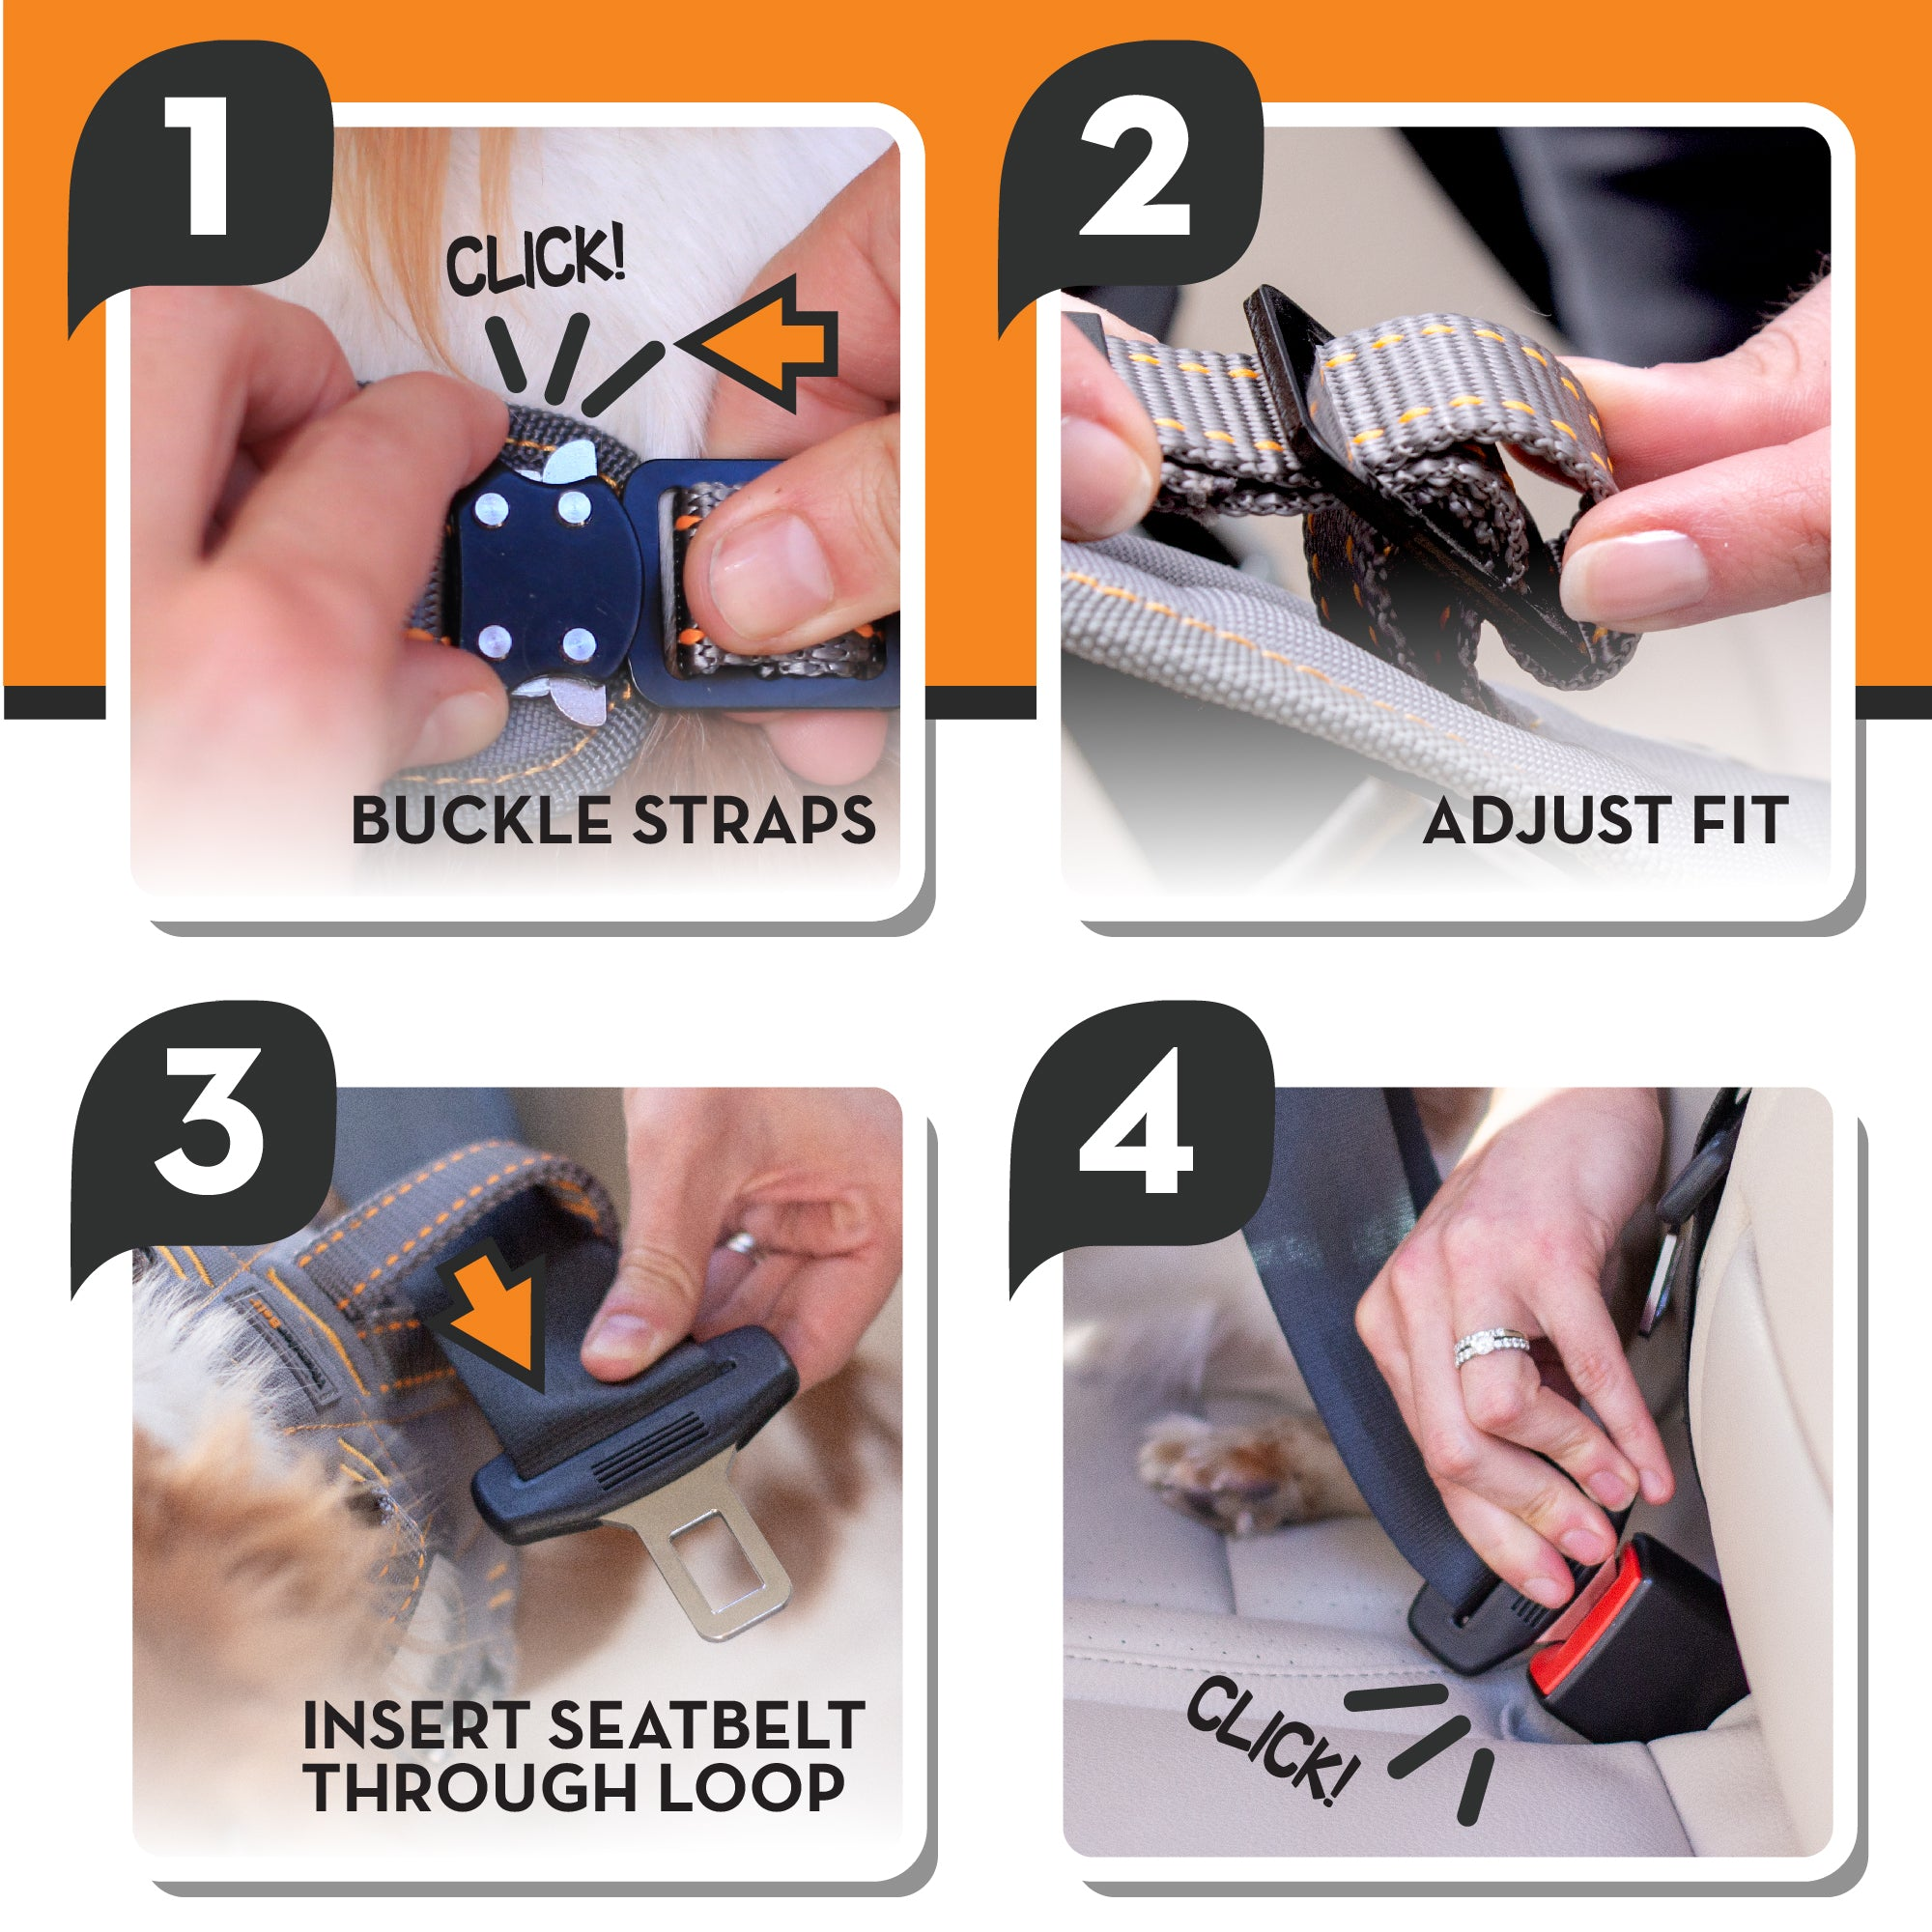 Steps on how to use a ThunderBelt safety belt for dogsT16-BeltGrey-S | T16-BeltGrey-M | T16-BeltGrey-L